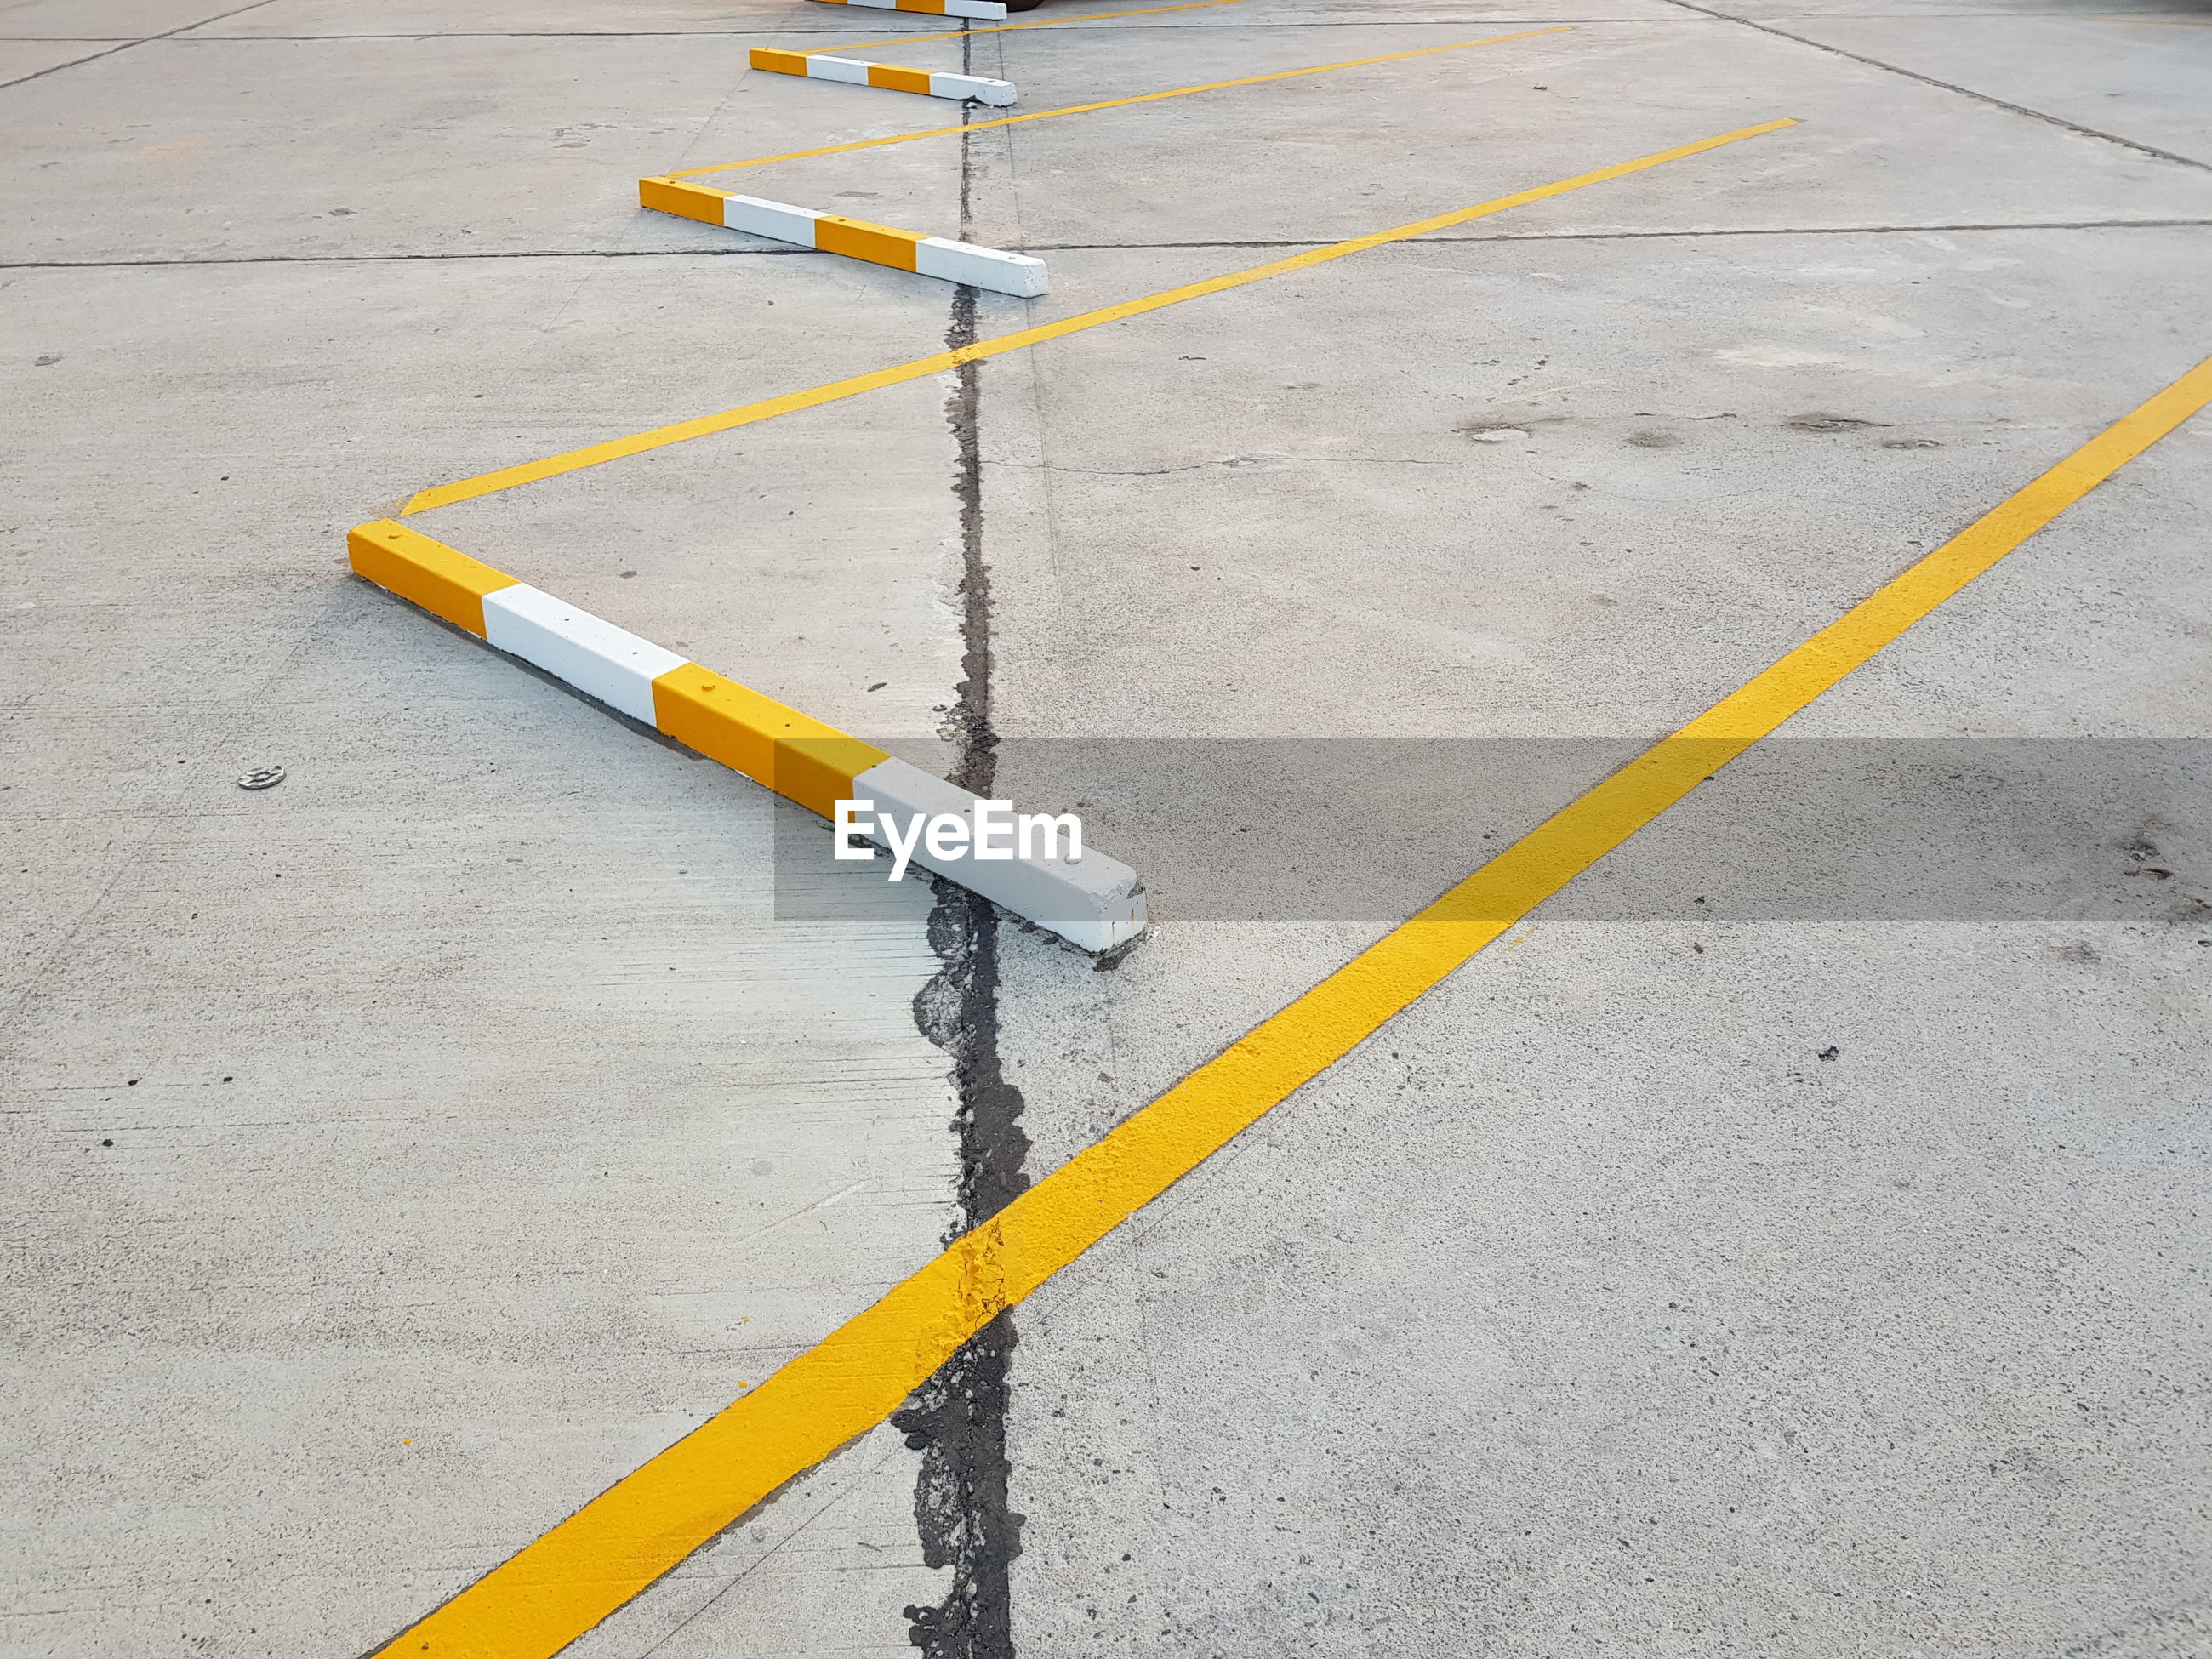 High angle view of yellow marking on road